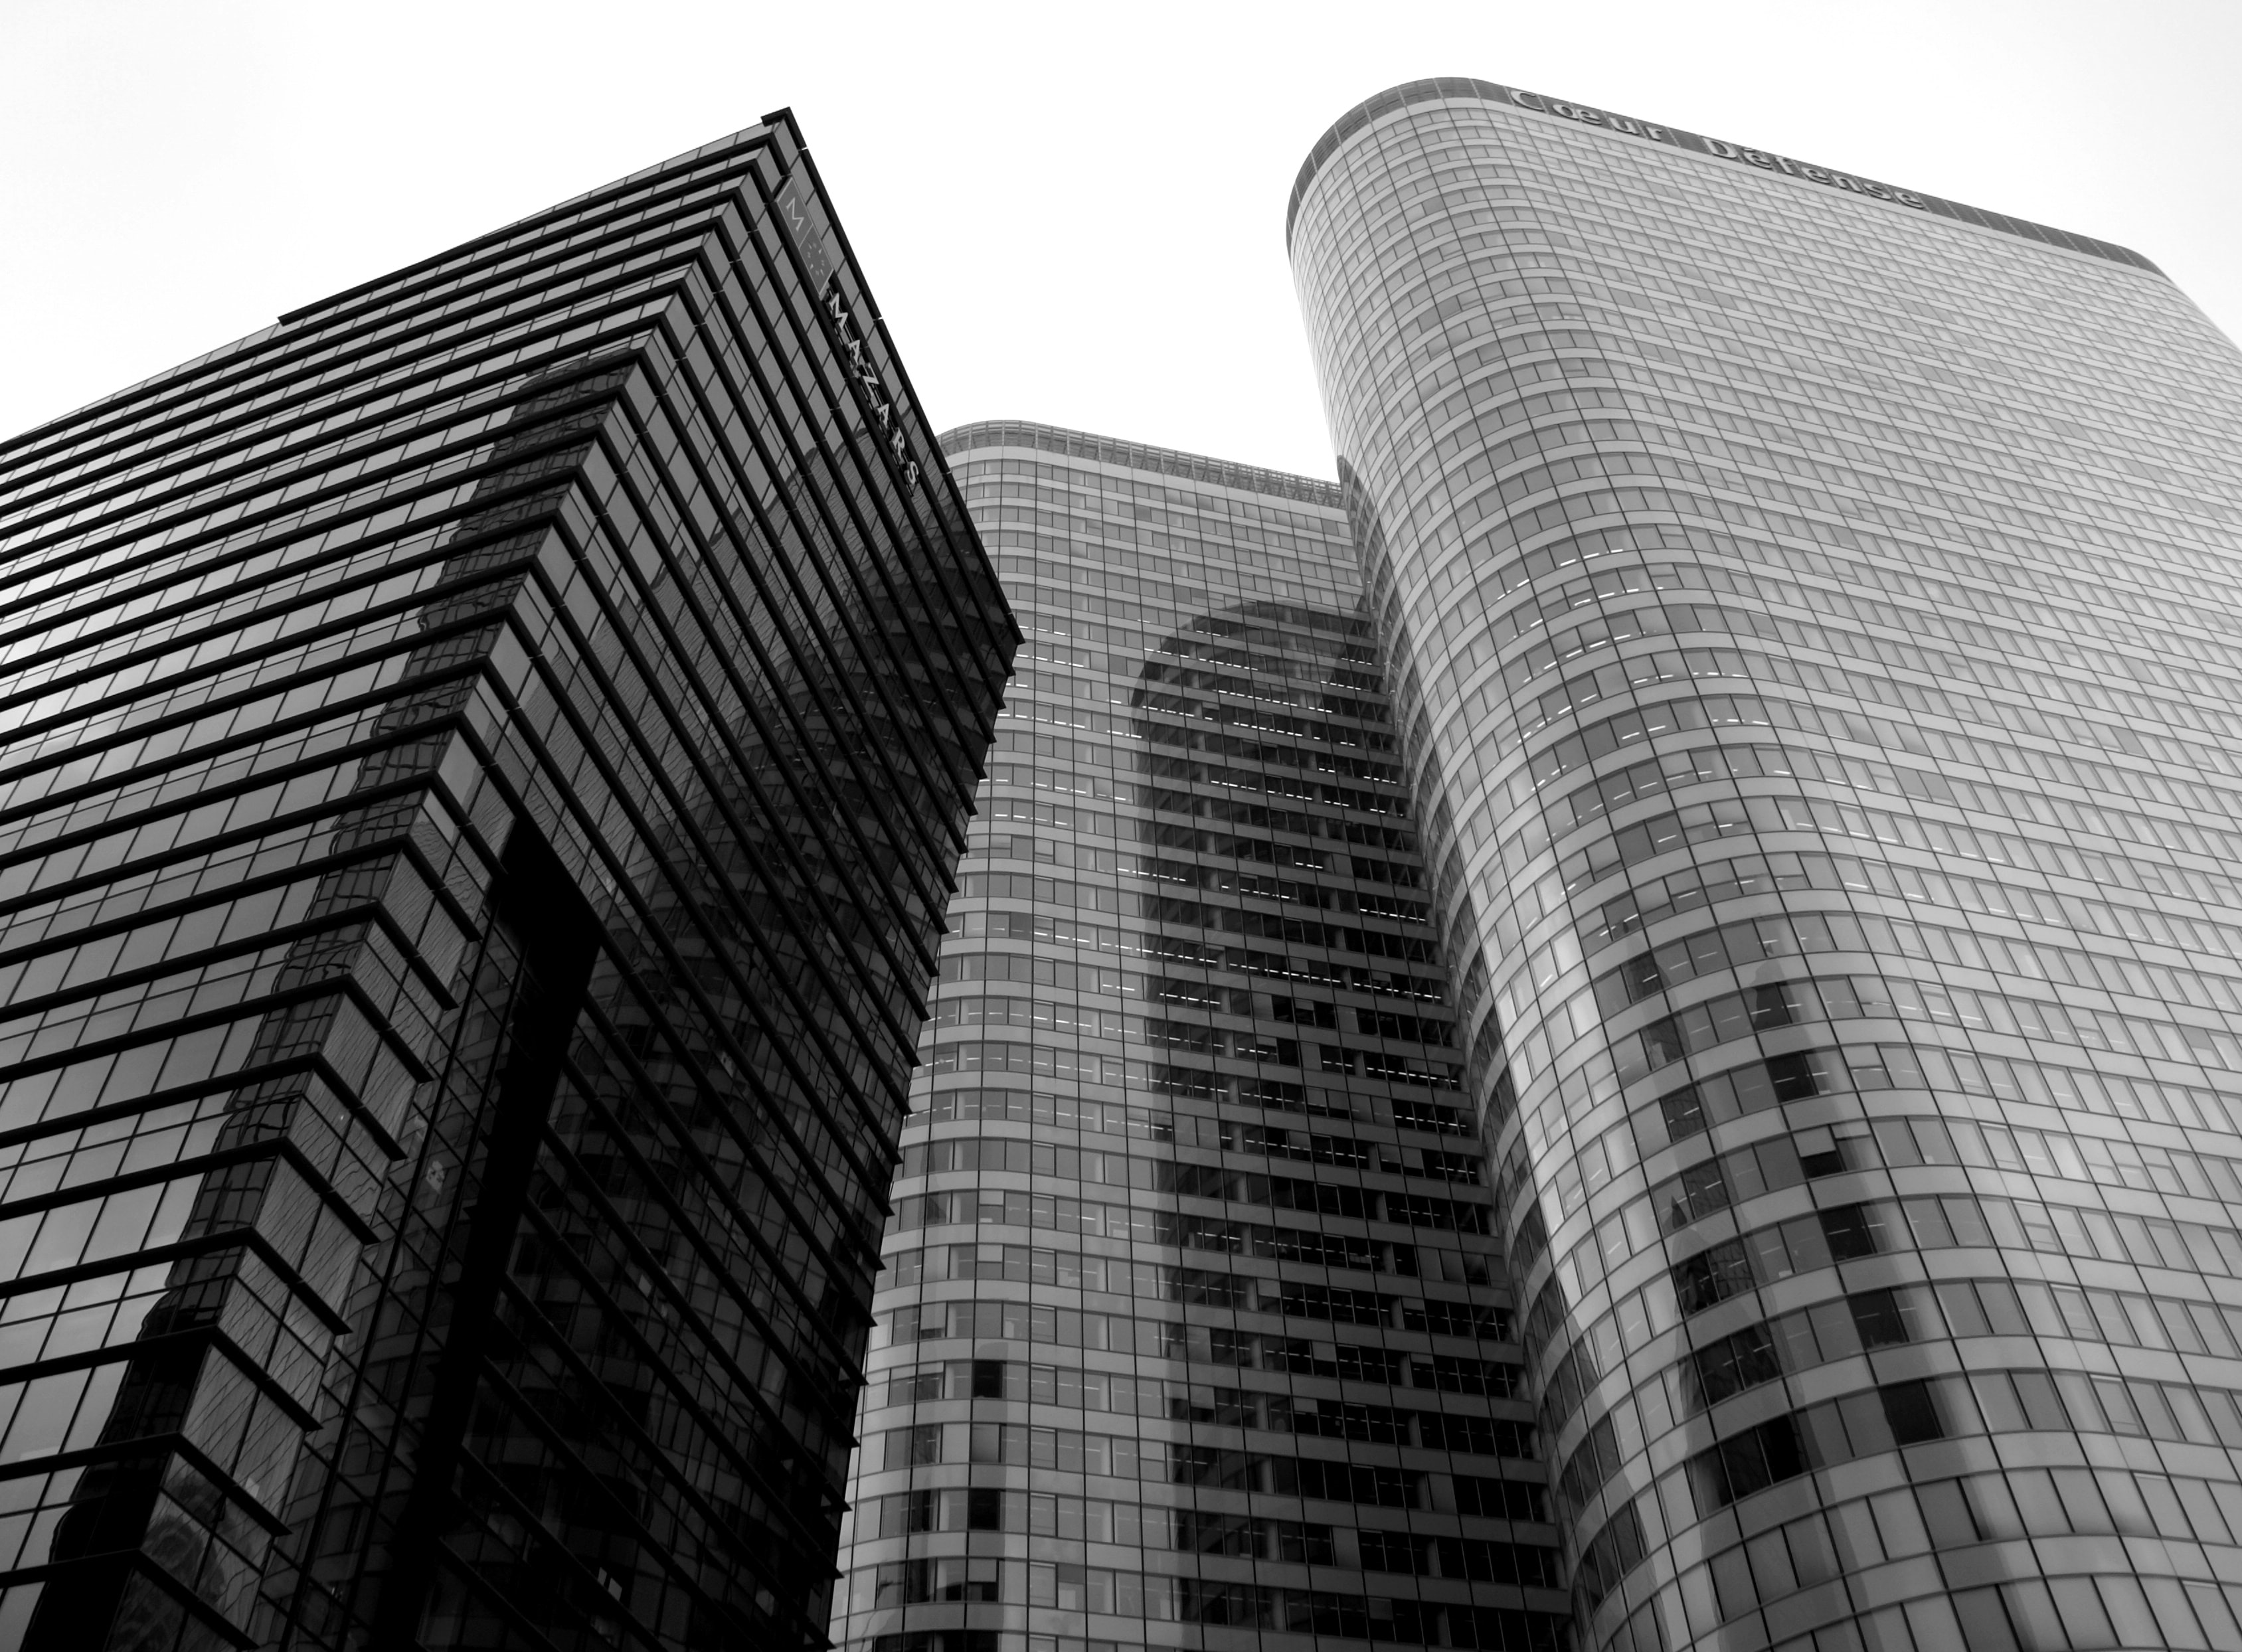 A desaturated shot of tall office buildings